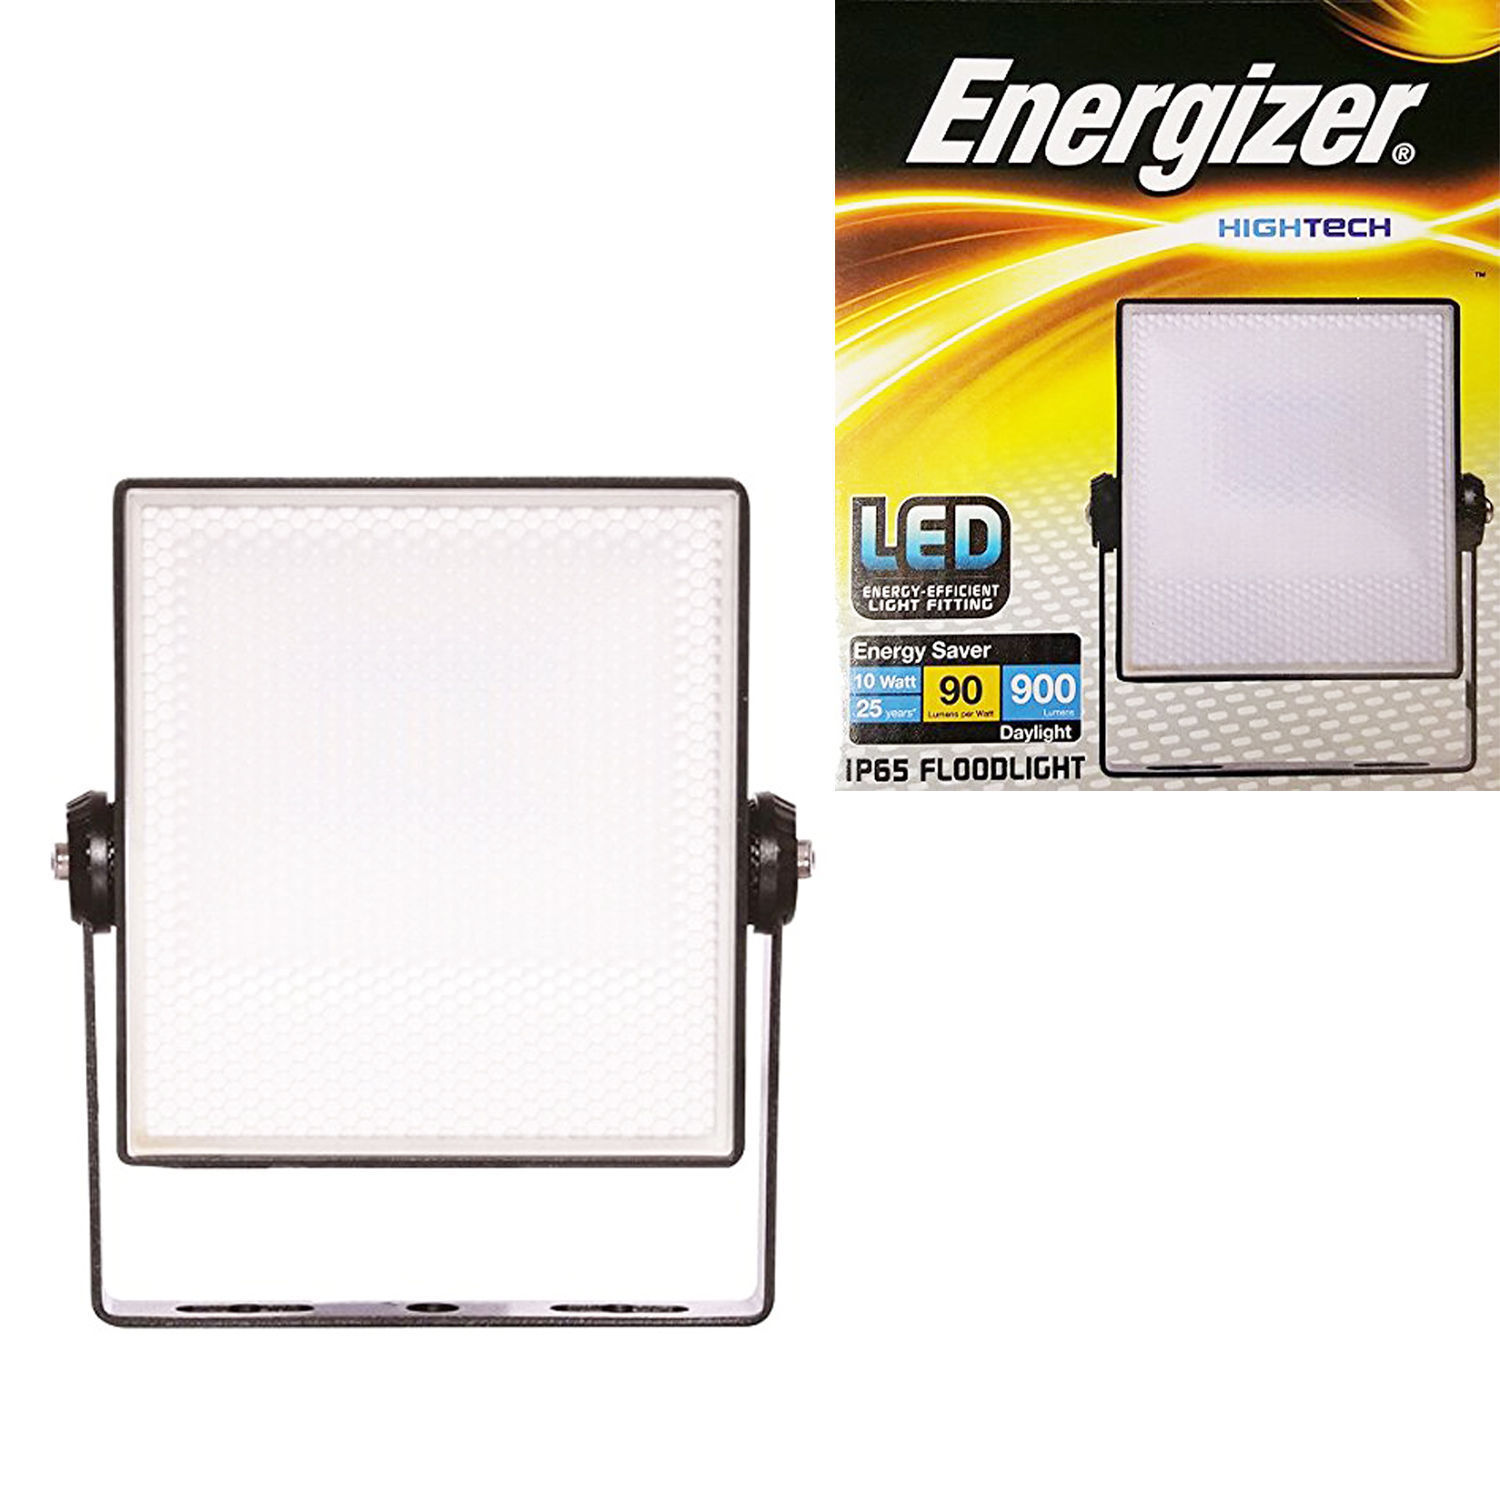 2 X Energizer 10w Led Ip65 Outdoor Security Floodlight Energy Saver Mains Powered Energizers Norton Secured By Verisign